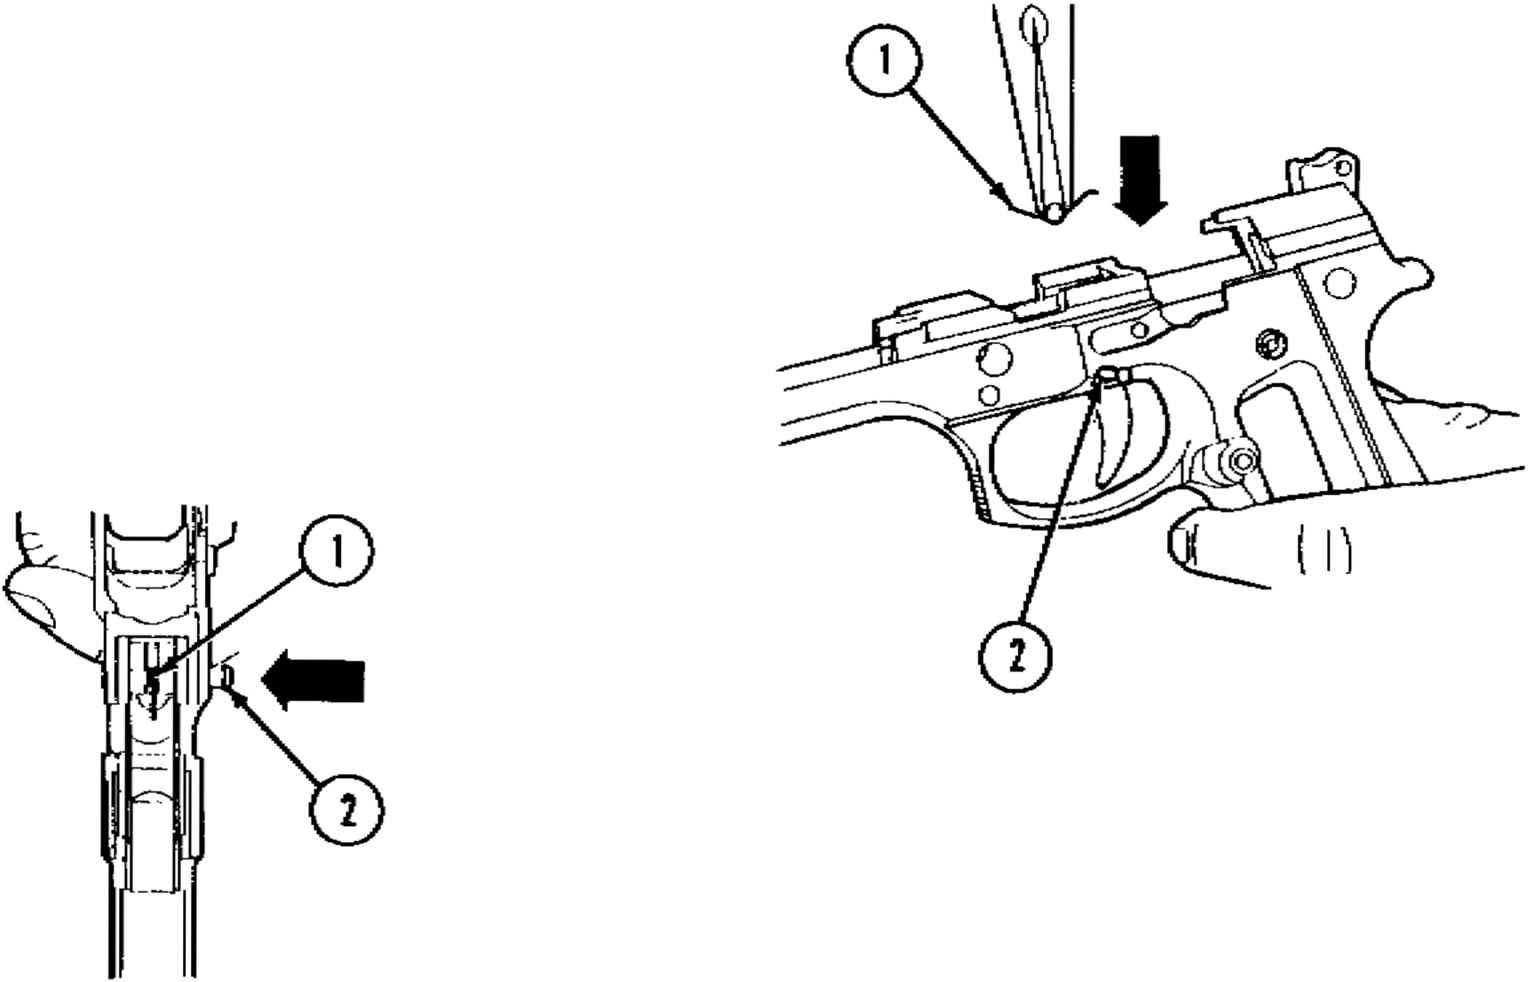 Diagram Of The Beretta 92f